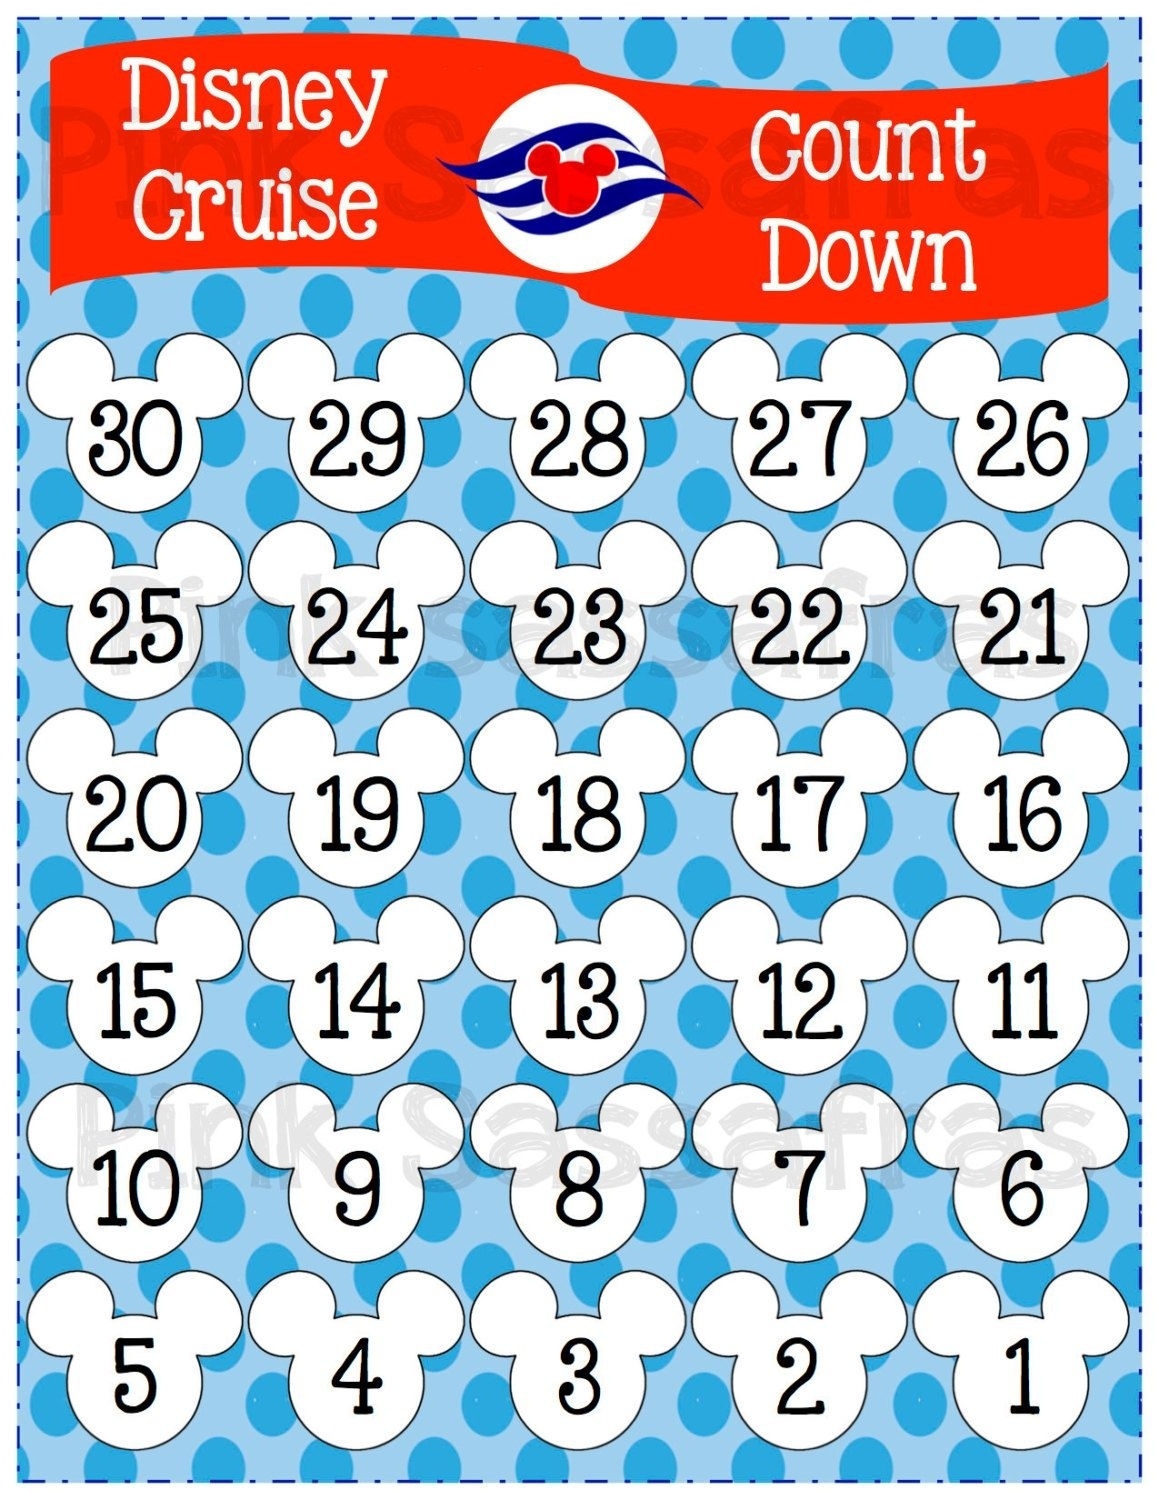 Mickey Mouse Disney Cruise Printable Countdown | Disney intended for Disney Cruise Countdown Calendar Out Of Paper